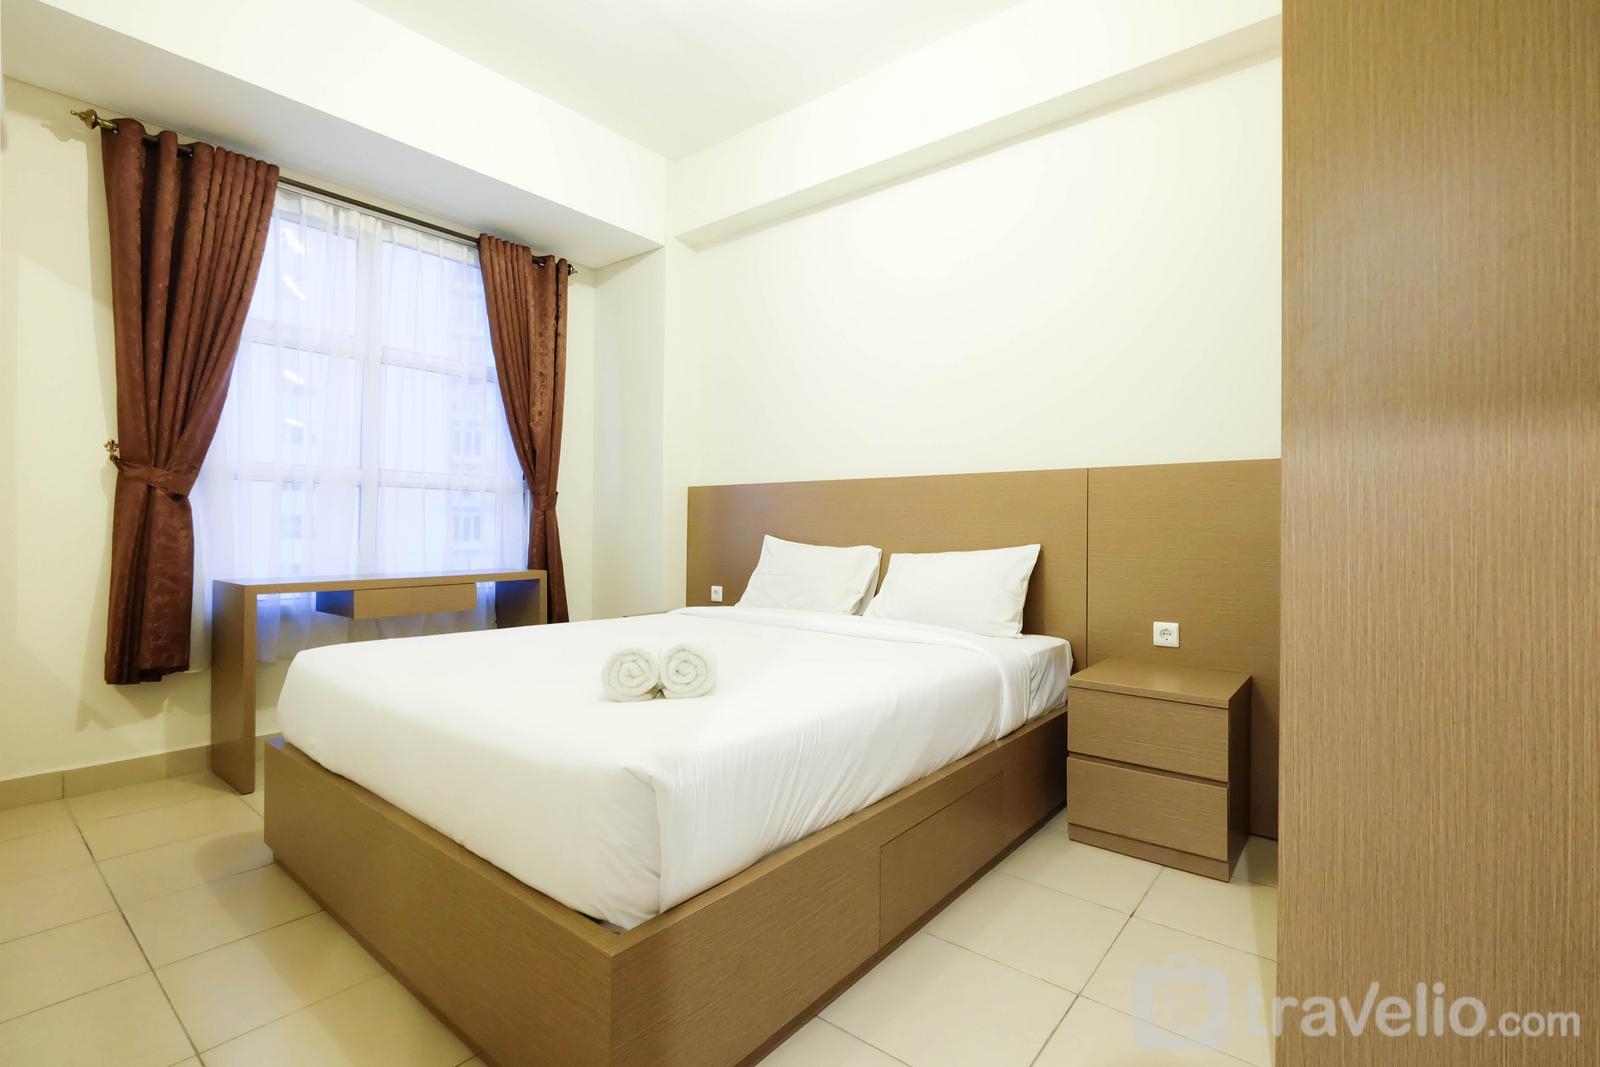 Saveria Apartment BSD City - Cozy and Spacious 1BR Saveria Apartment near AEON Mall & ICE BSD By Travelio